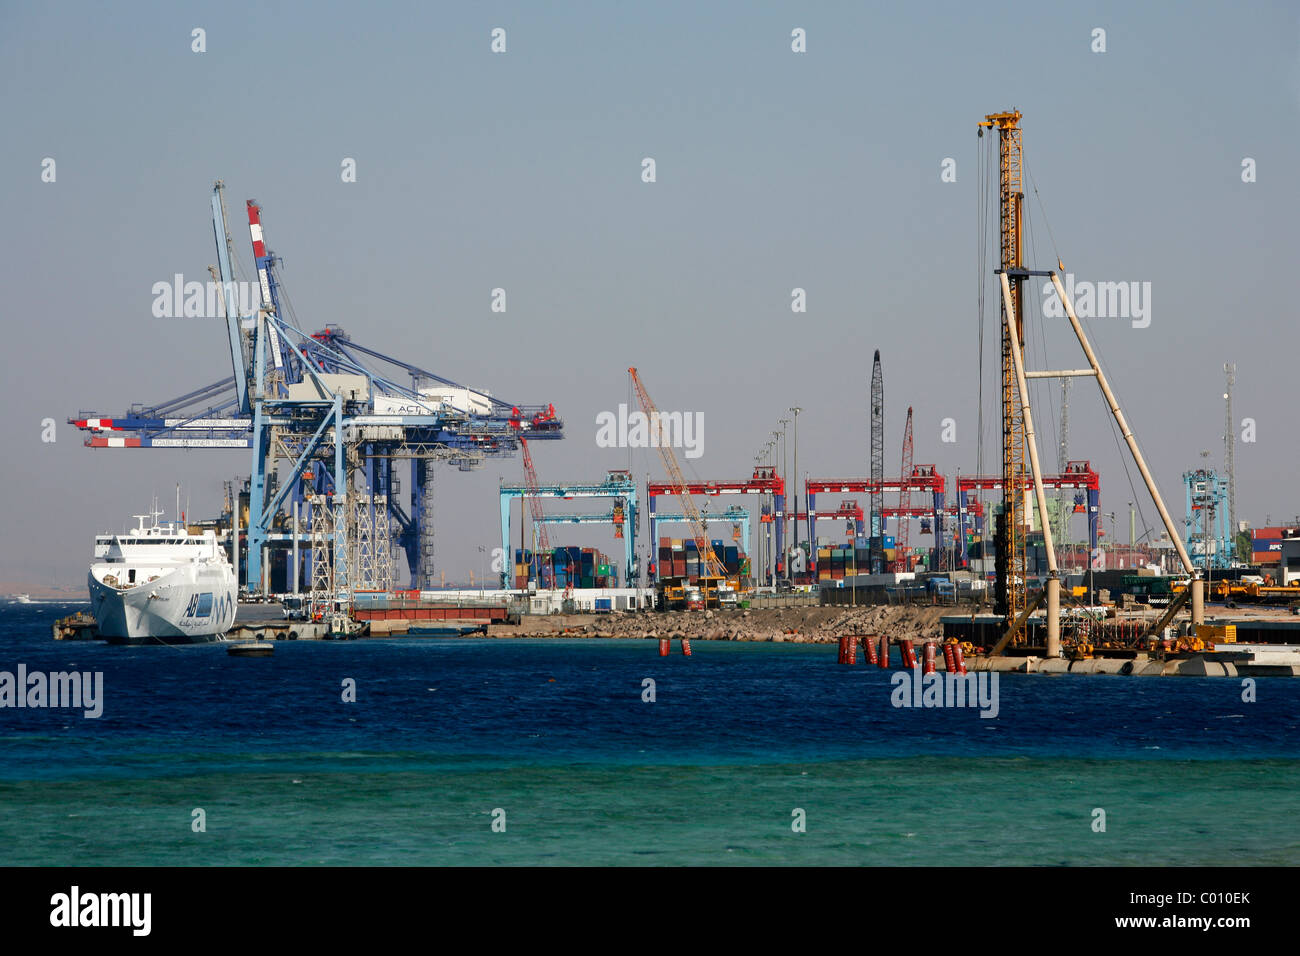 The port of Aqaba, Jordan. - Stock Image